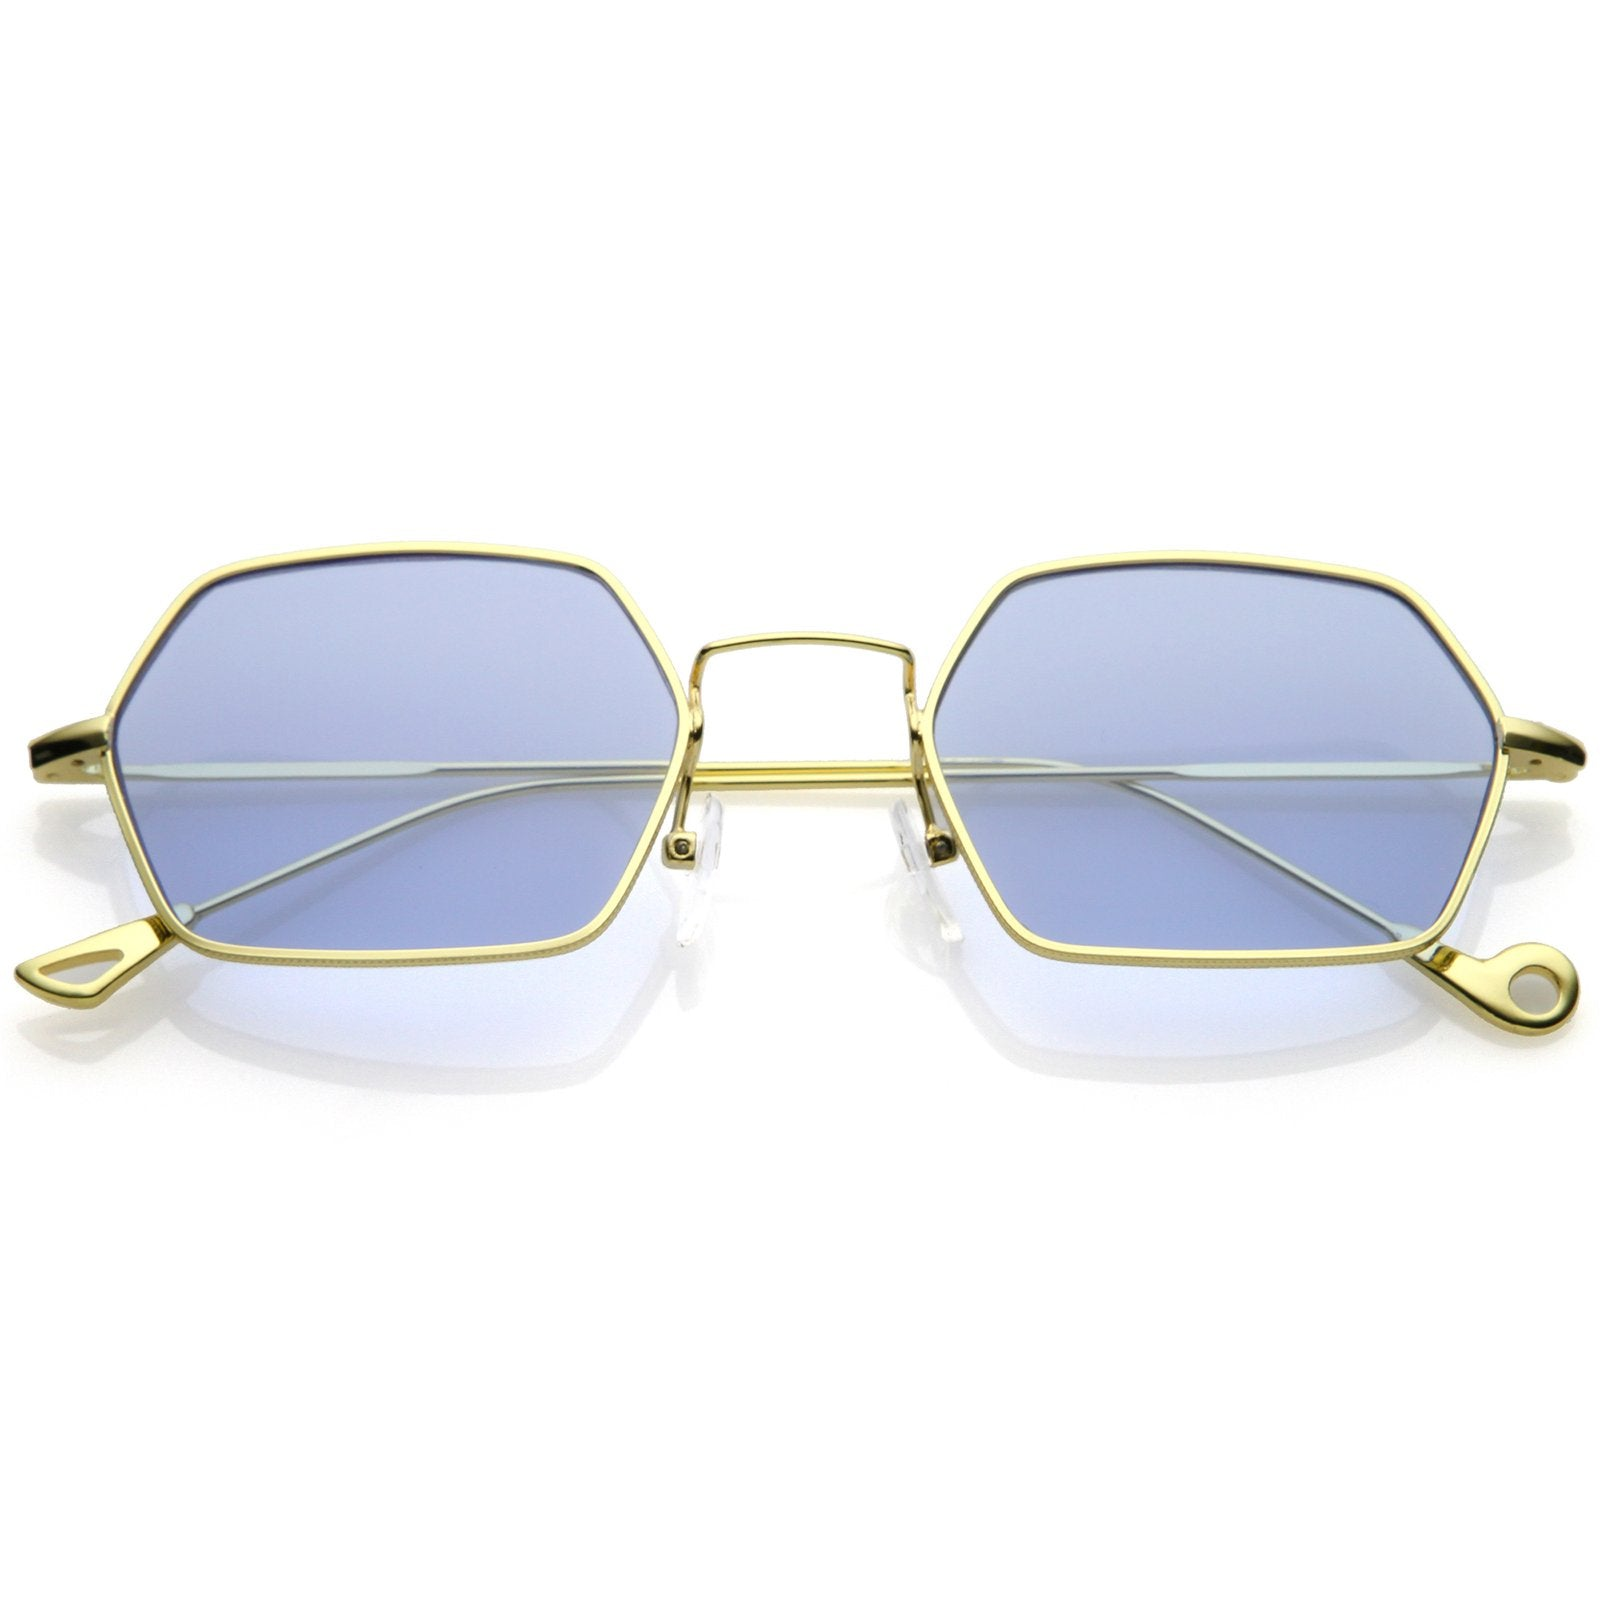 6618c02bde823 Retro Small Hexagon Colored Flat Lens Metal Frame Sunglasses - zeroUV